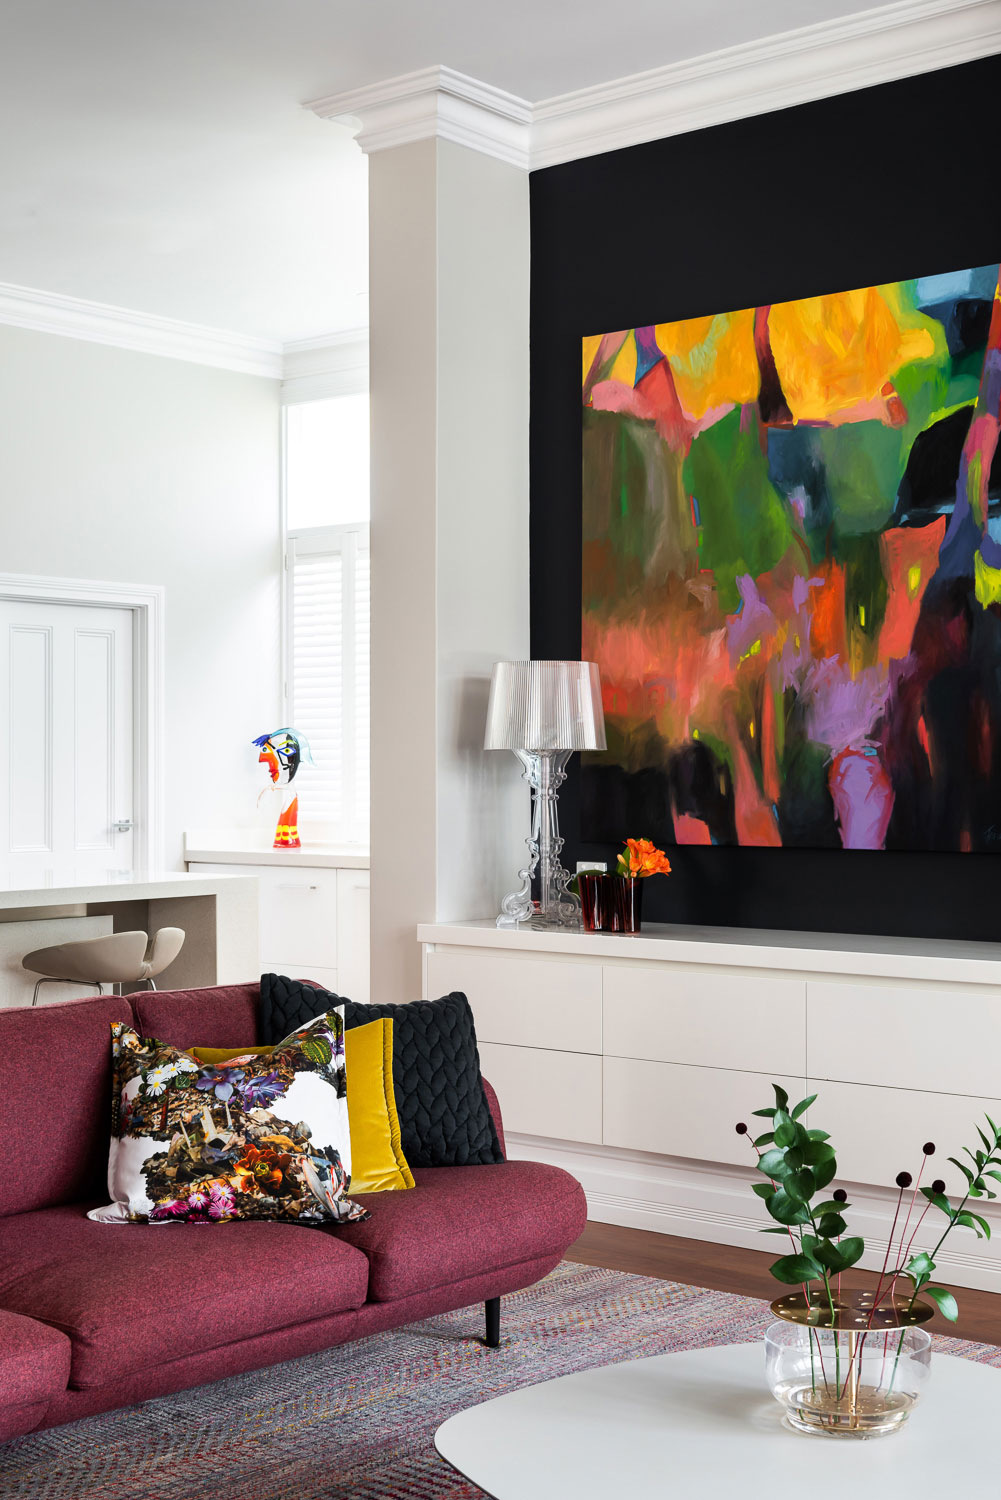 Tracey's painting in a modern room